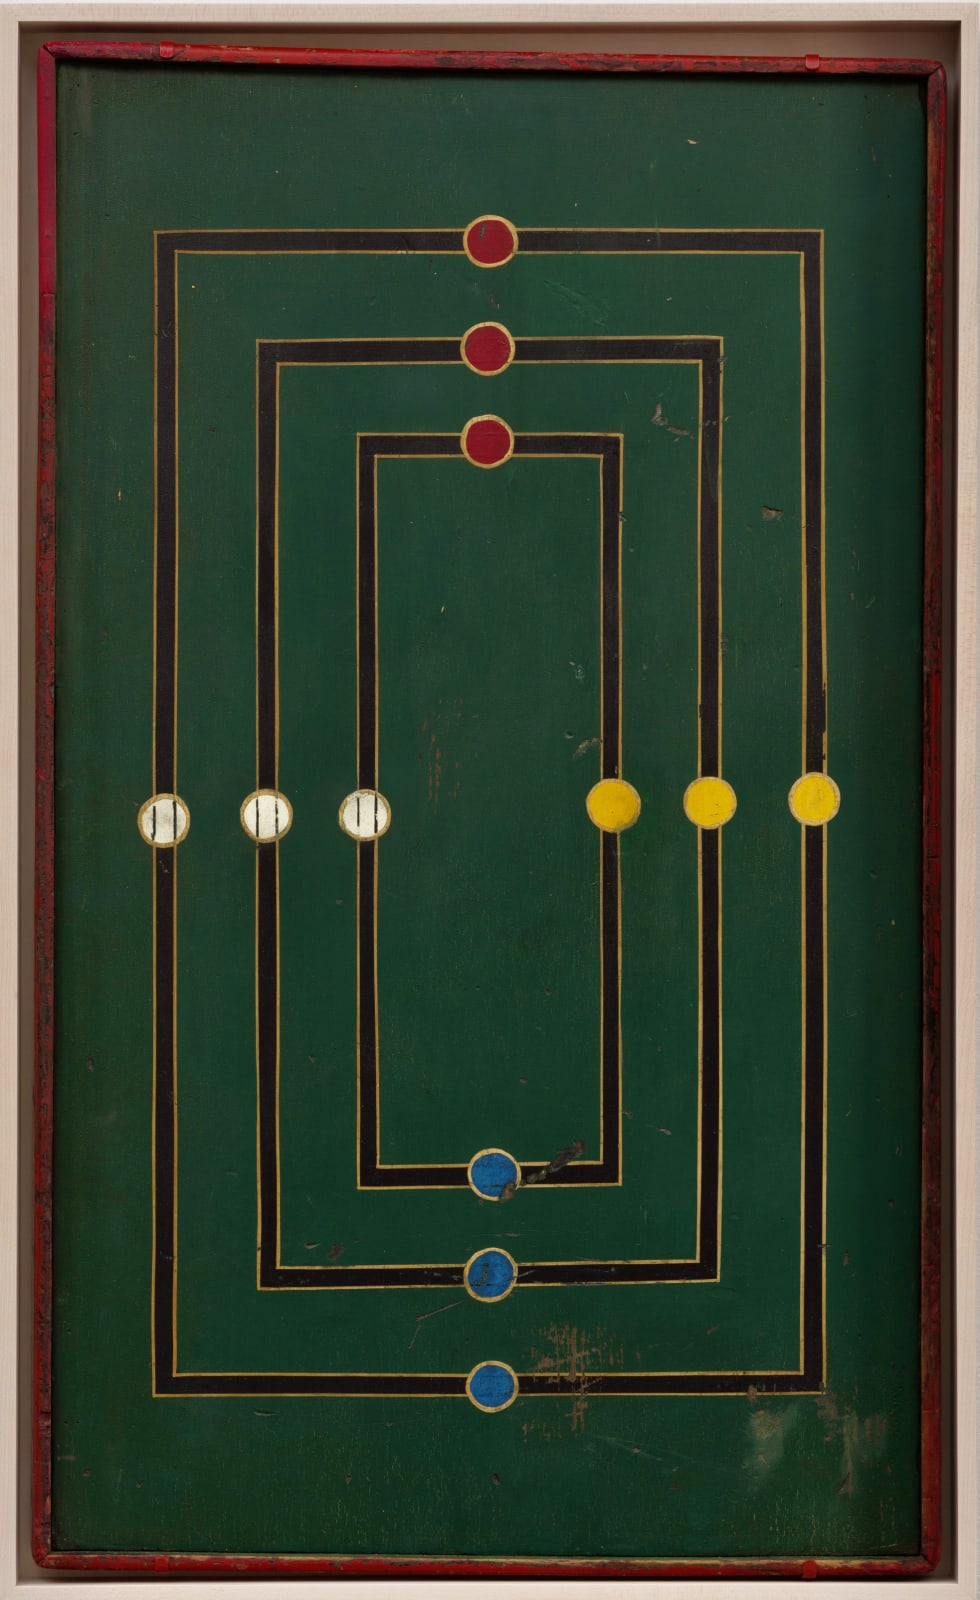 MILLS GAME BOARD, C. 1930-40 Paint on wood panel 29 x 17 in. 73.7 x 43.2 cm. (AU 300)